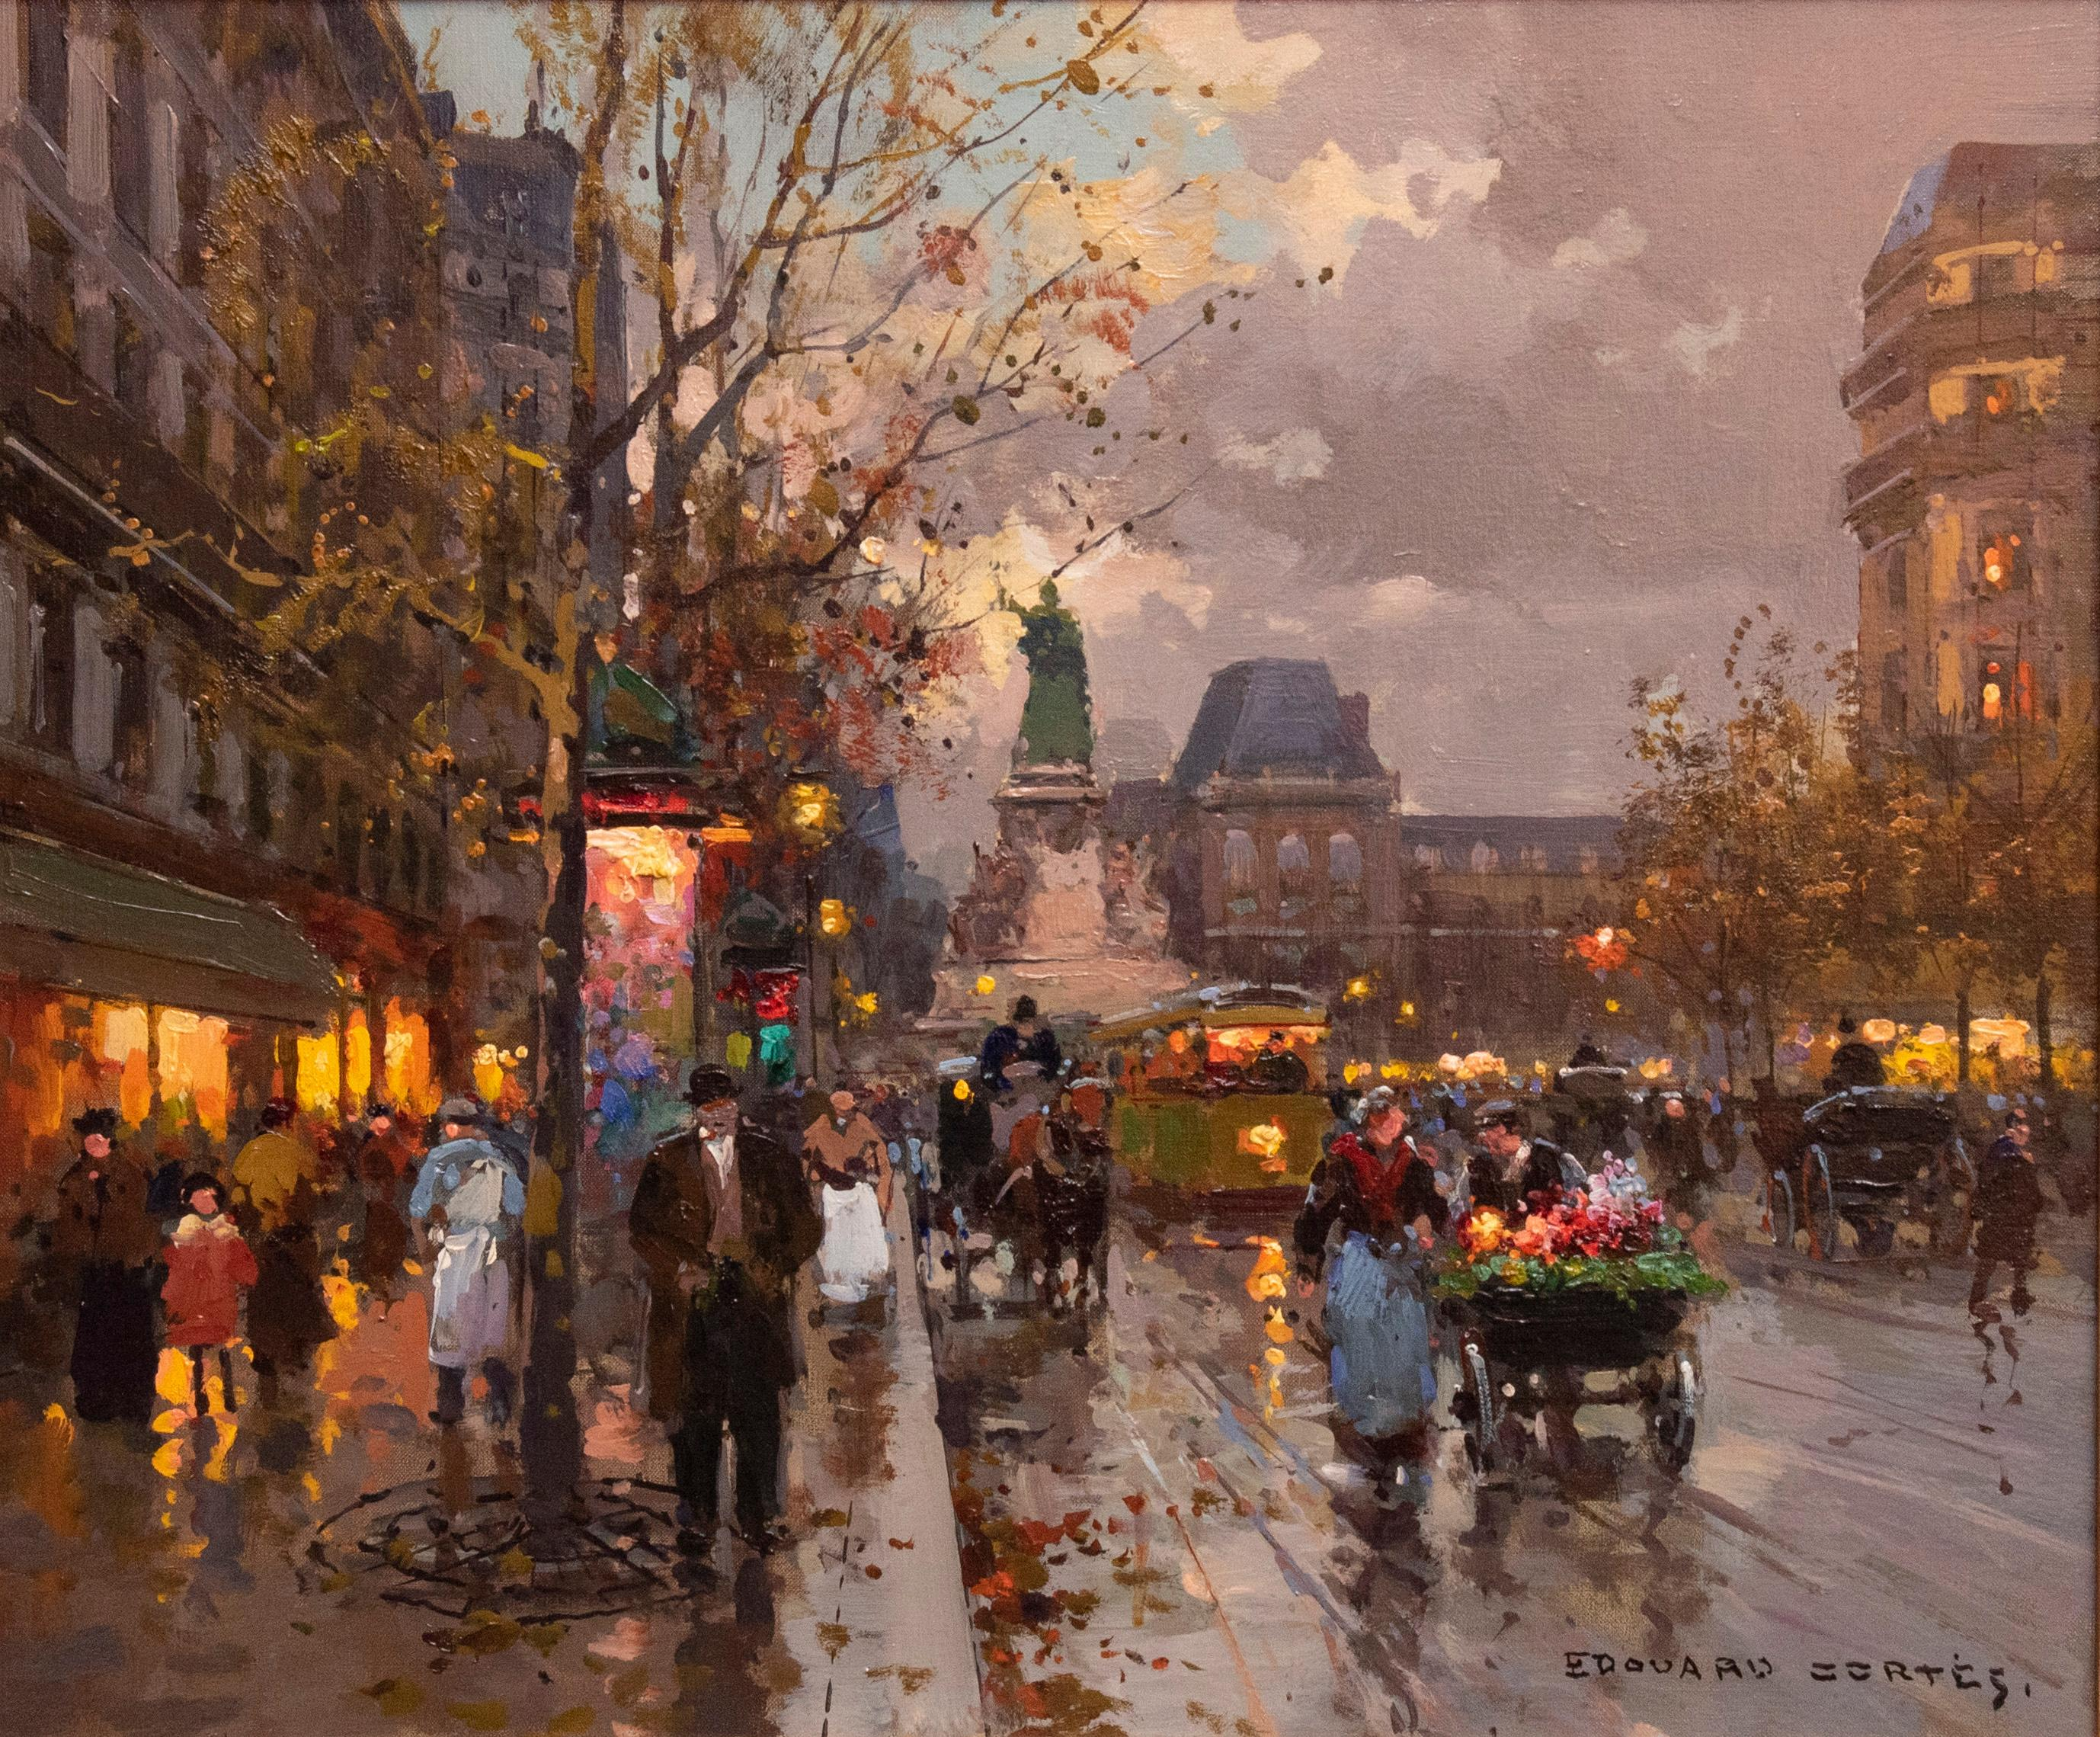 Edouard Leon Cortes, French , Place de la Republique, oil on canvas, 18 x 21 inches